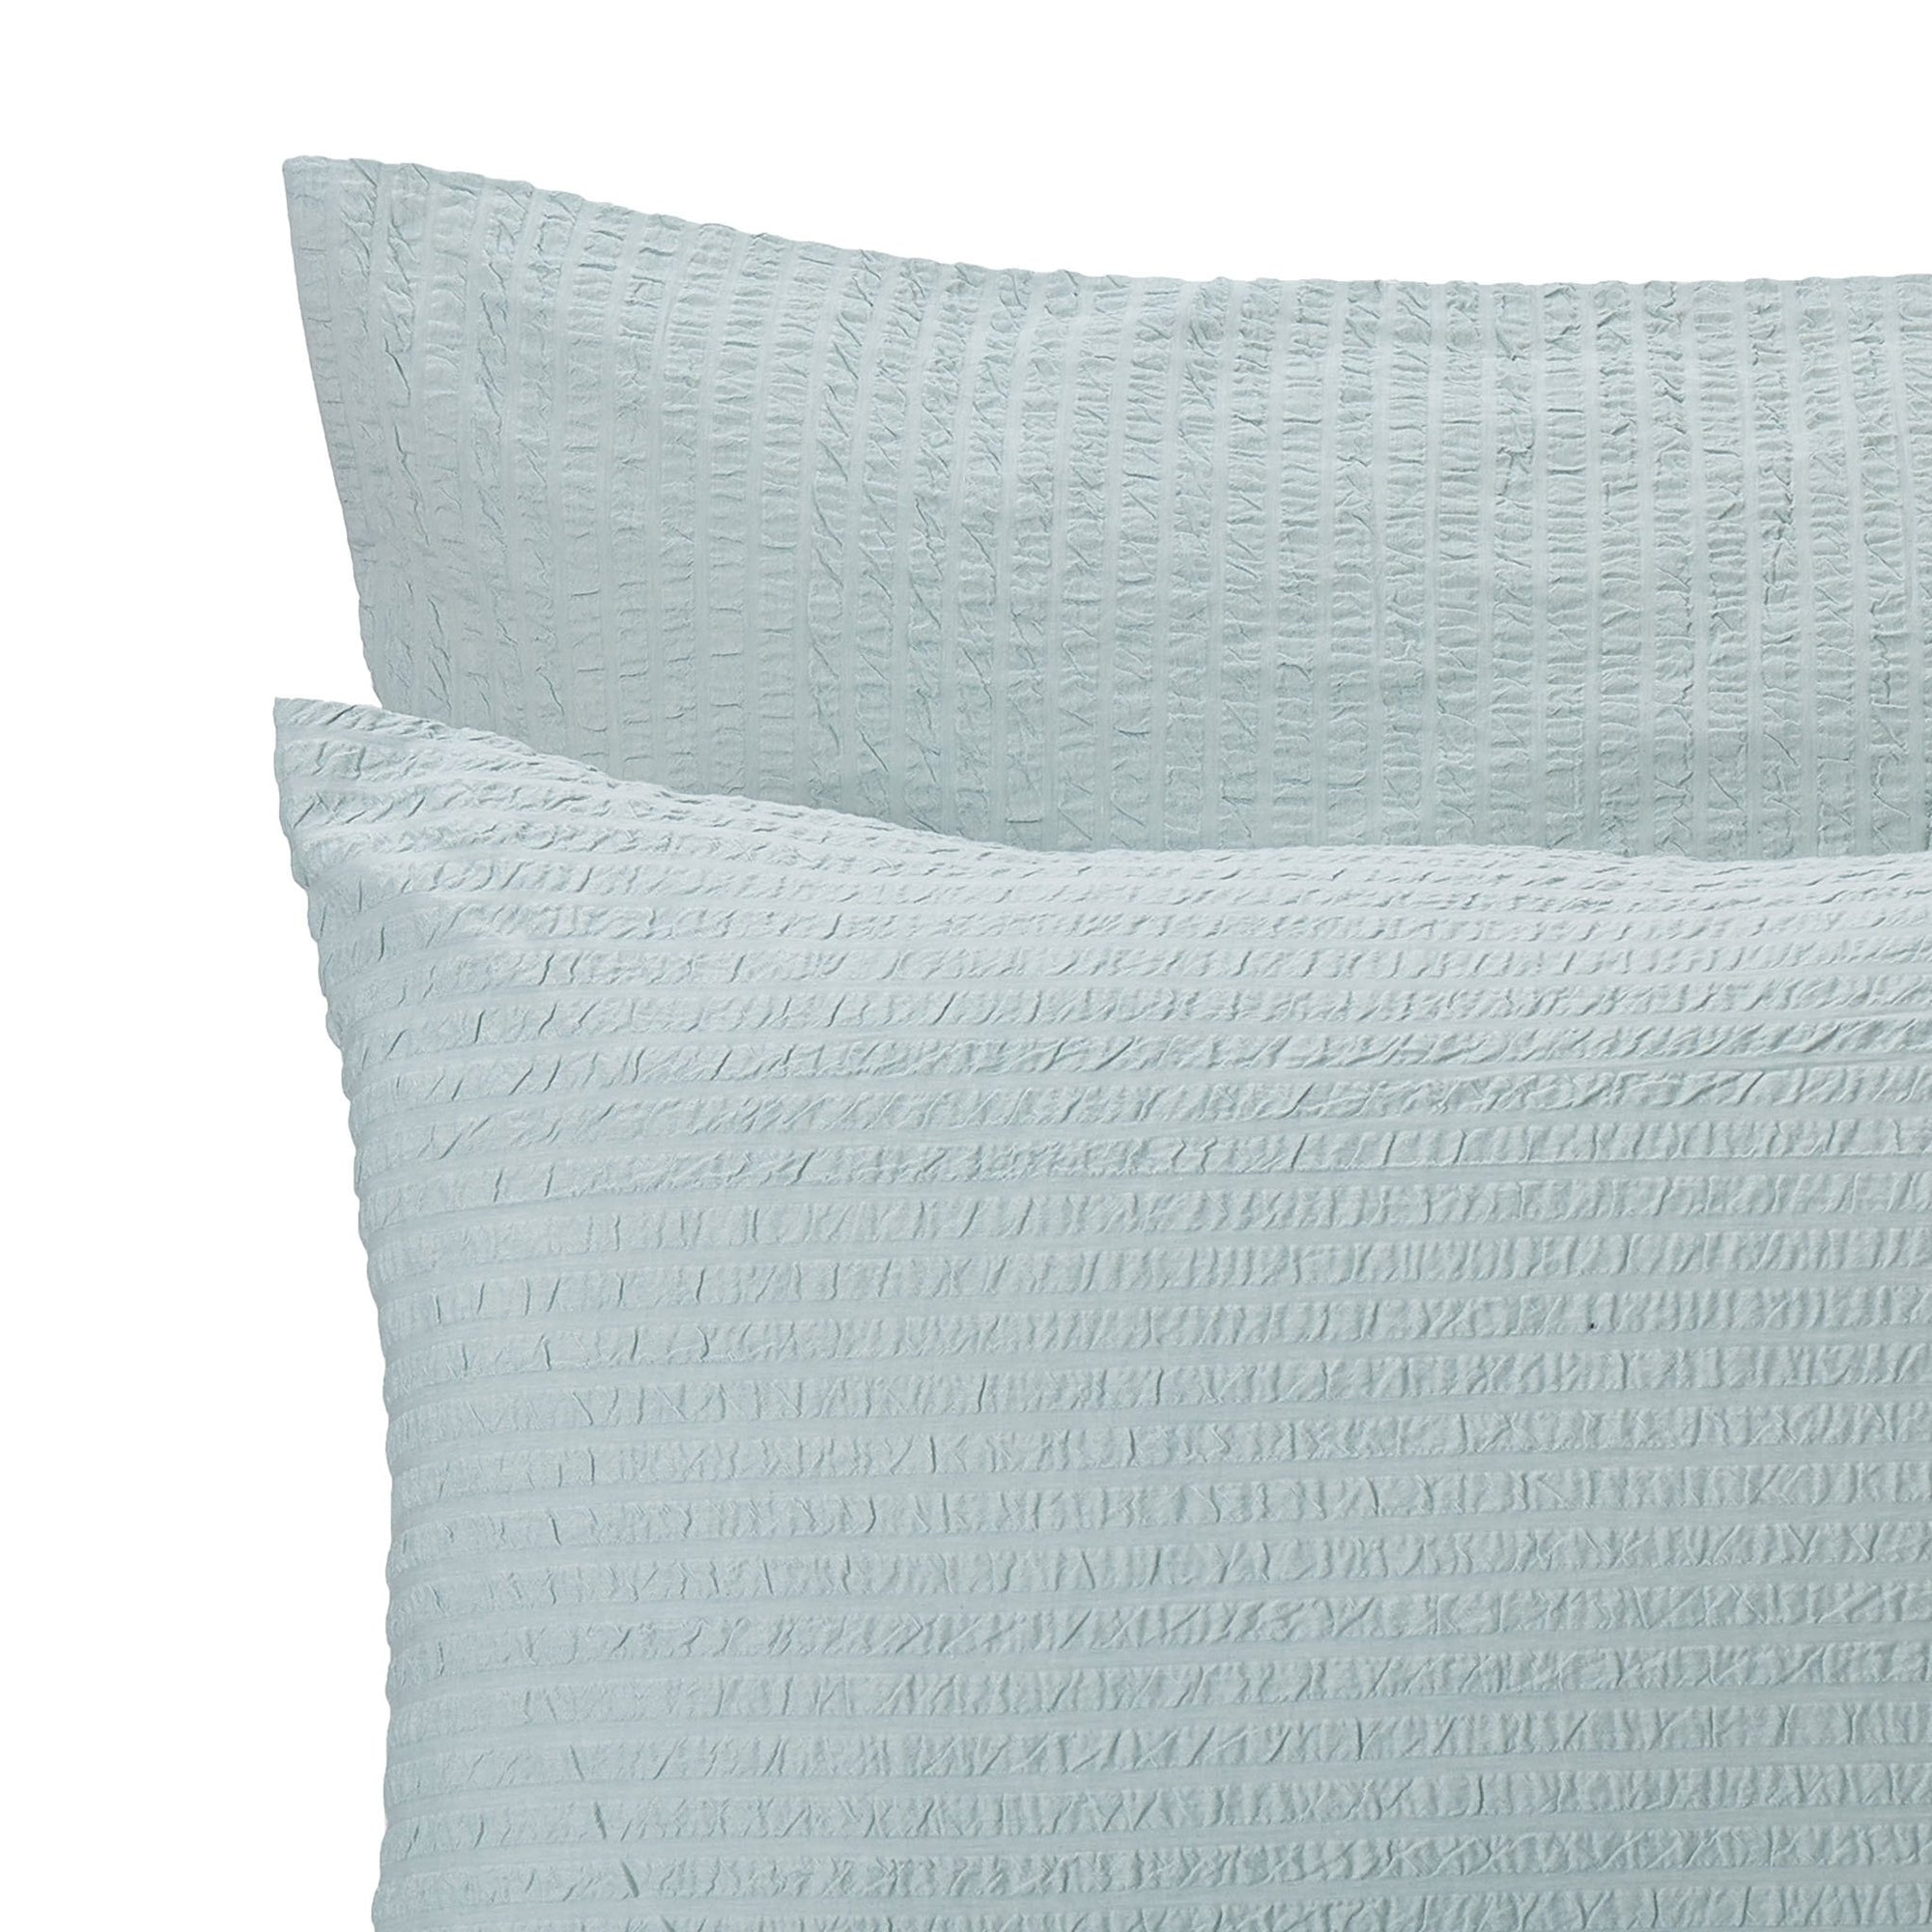 Ansei Pillowcase, white, 100% cotton